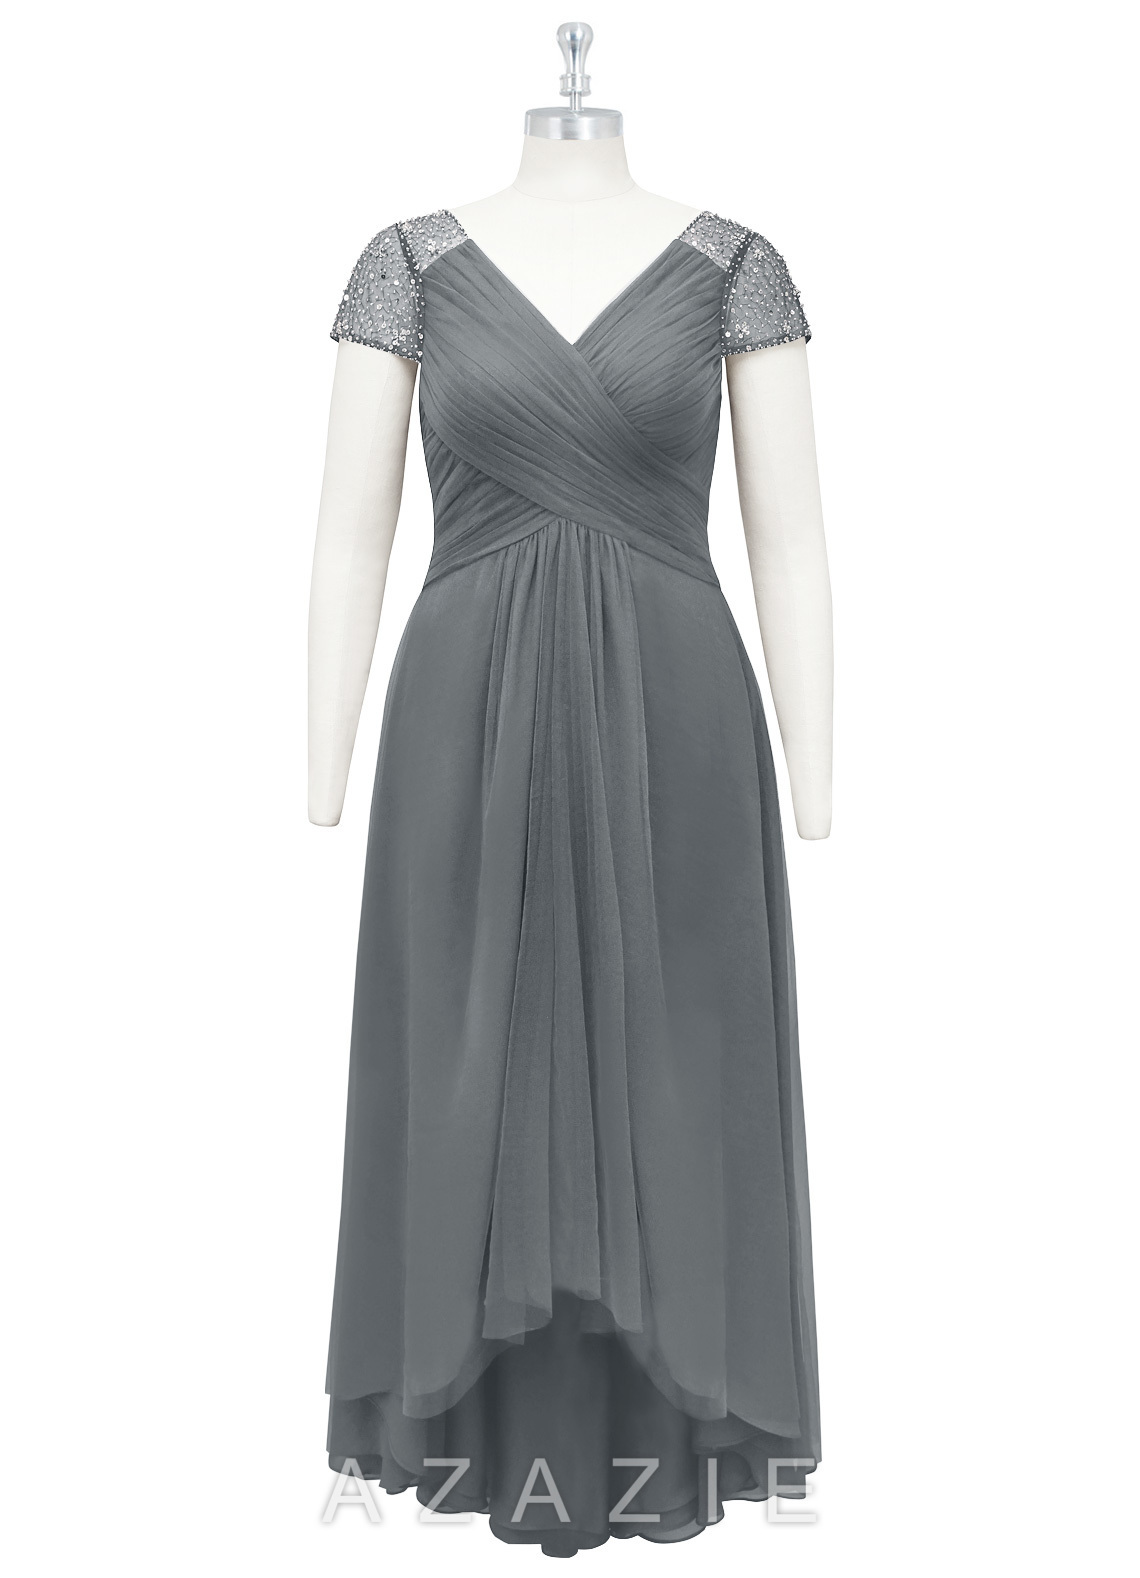 bcf7b1531d Azazie Miranda MBD Mother Of The Bride Dress | Azazie